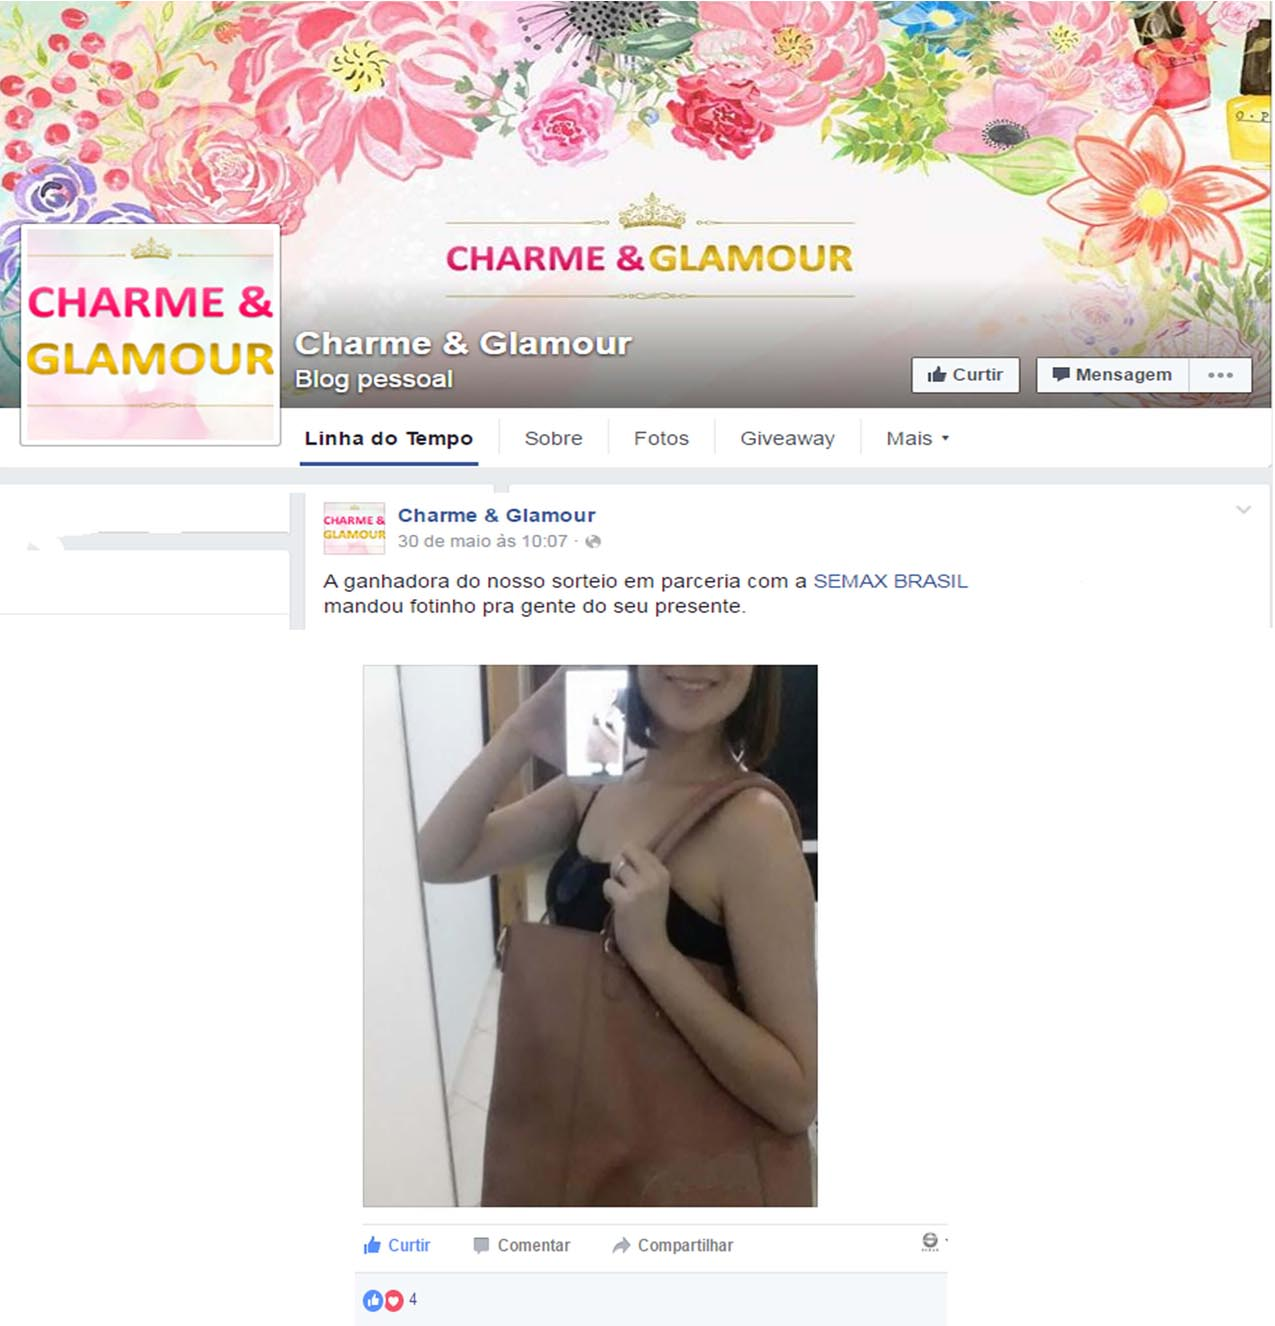 Facebook Charme & Glamour